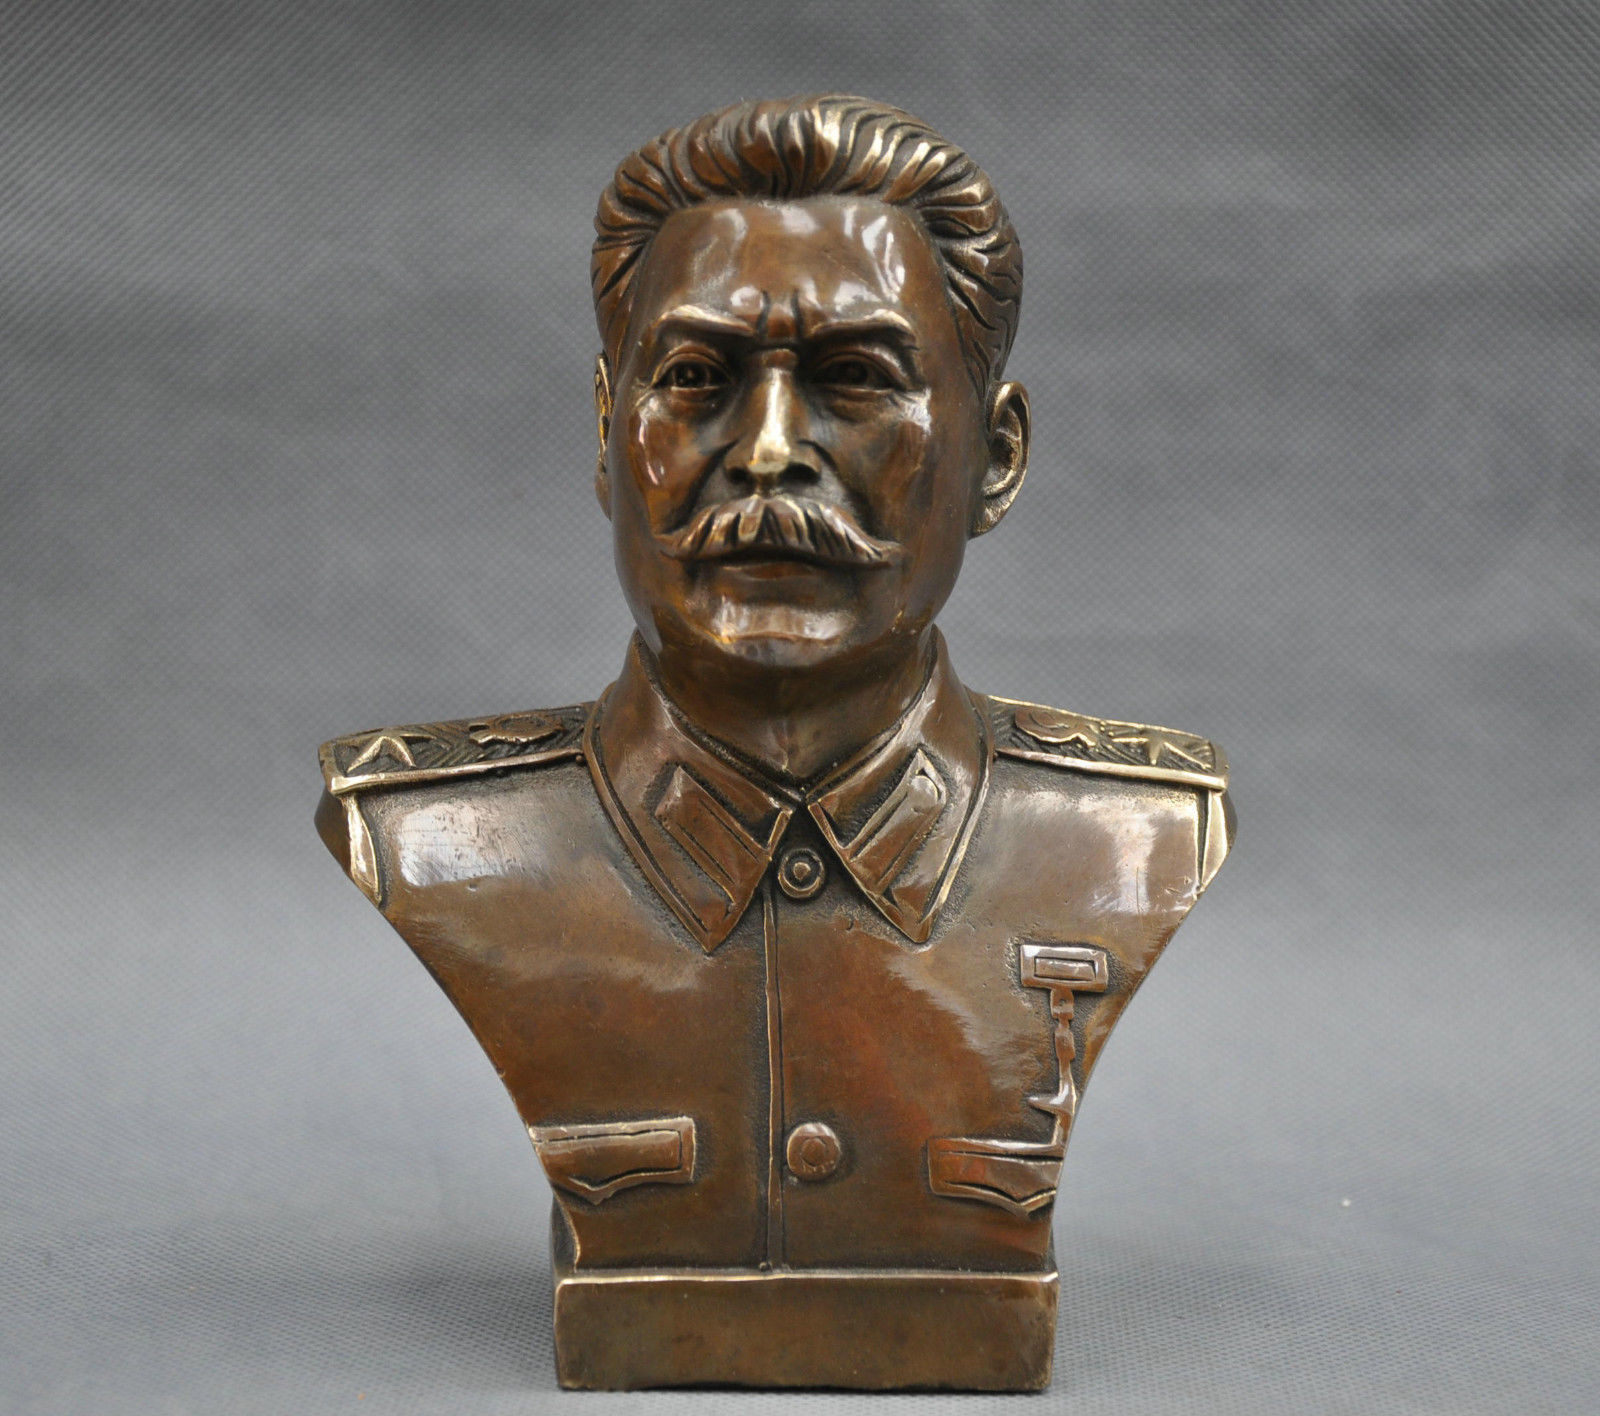 Russian Great Man Leader Joseph Stalin Bust Bronze Statue home decor